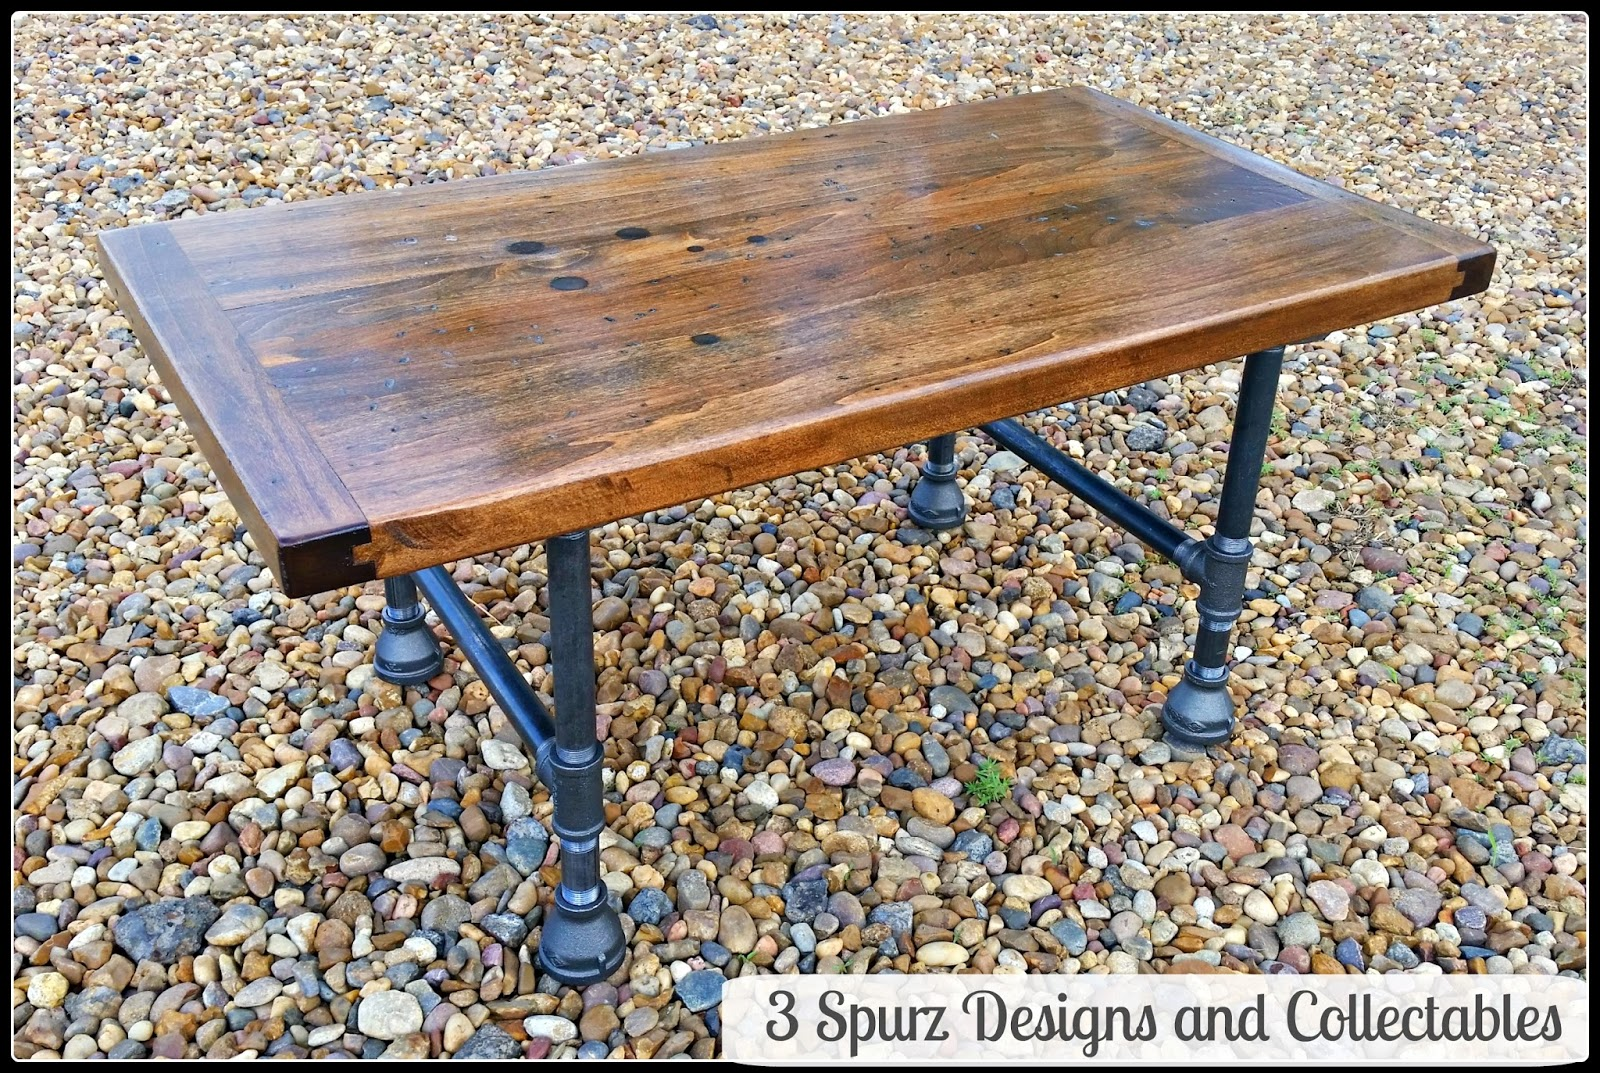 Vintage Industrial Butcher Block Workbench Top,with Original Patina That  Tells The Story Of Many Jobs Well Done. Turned Into Coffee Table With Pipe  Legs.